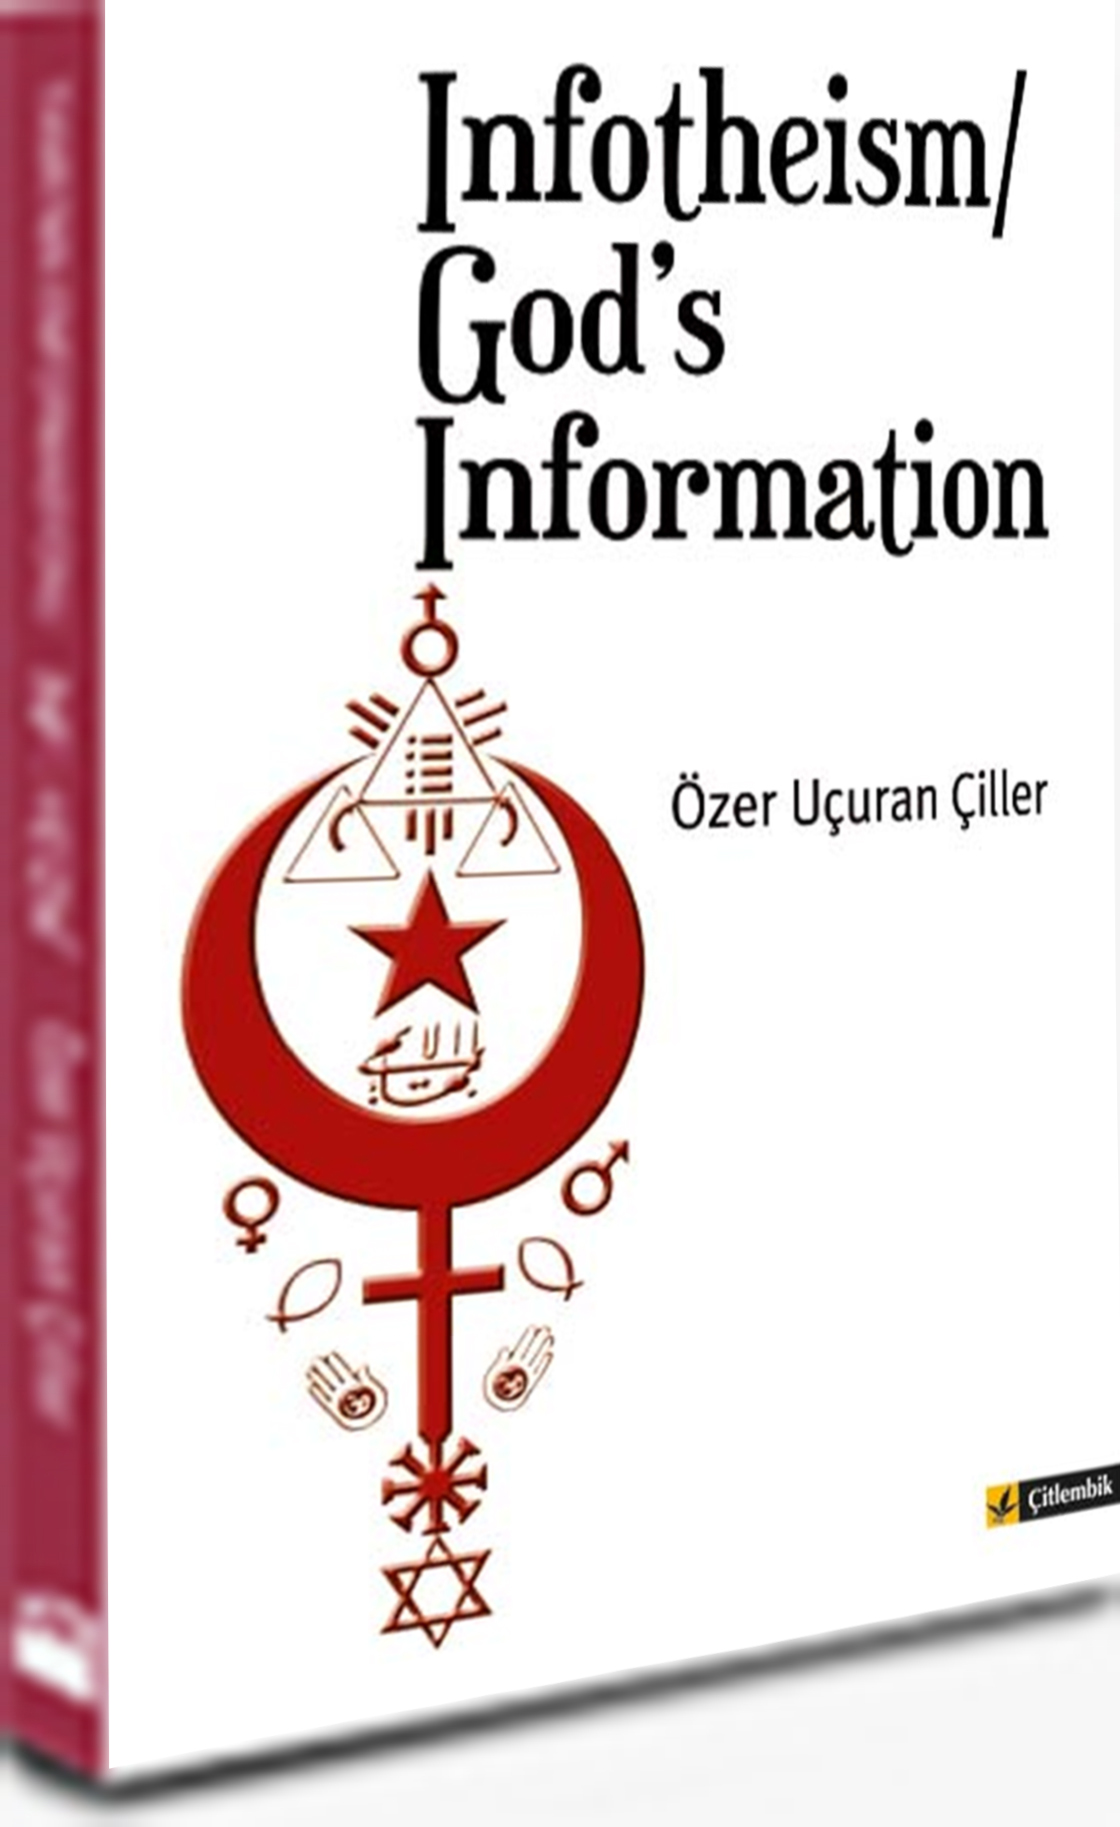 Infotheism / God's Information